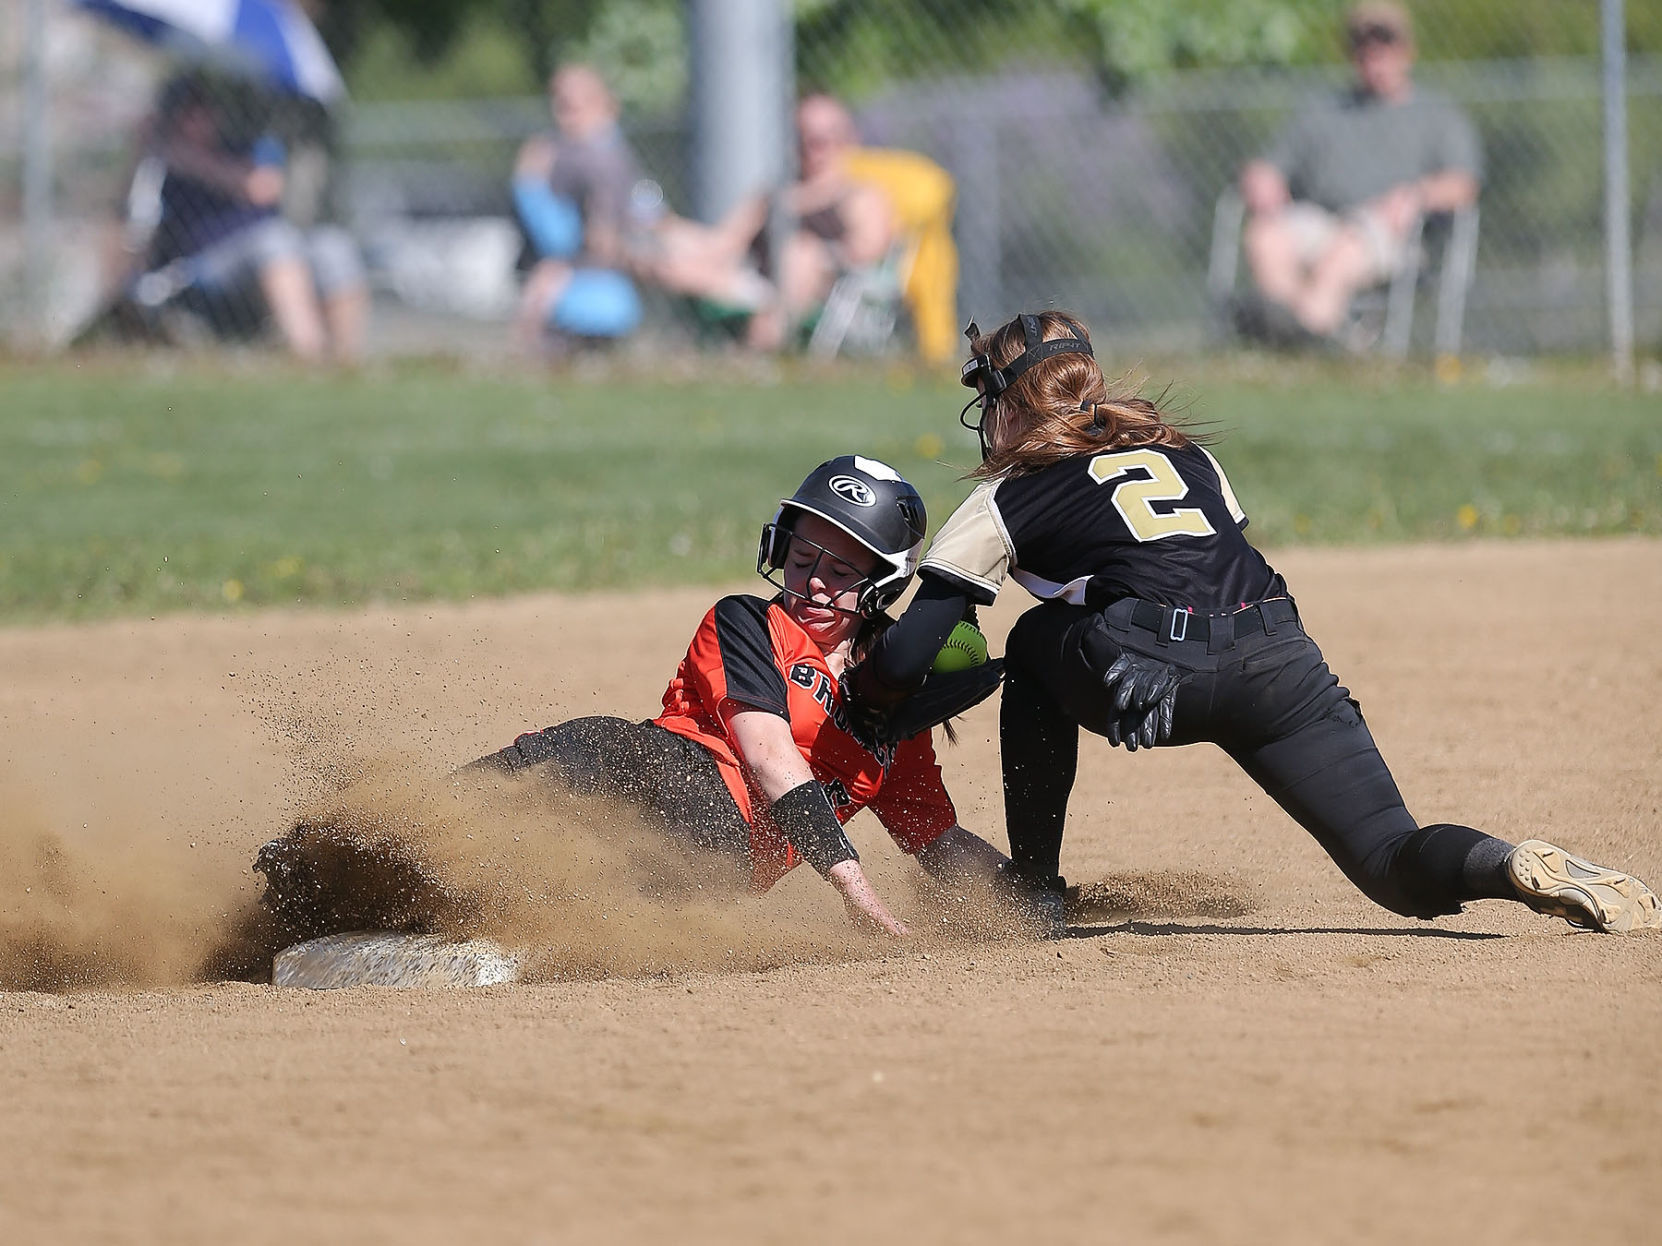 Relax Hocker State Aa Softball Erin Hocker Throws No Hitter For Great Falls